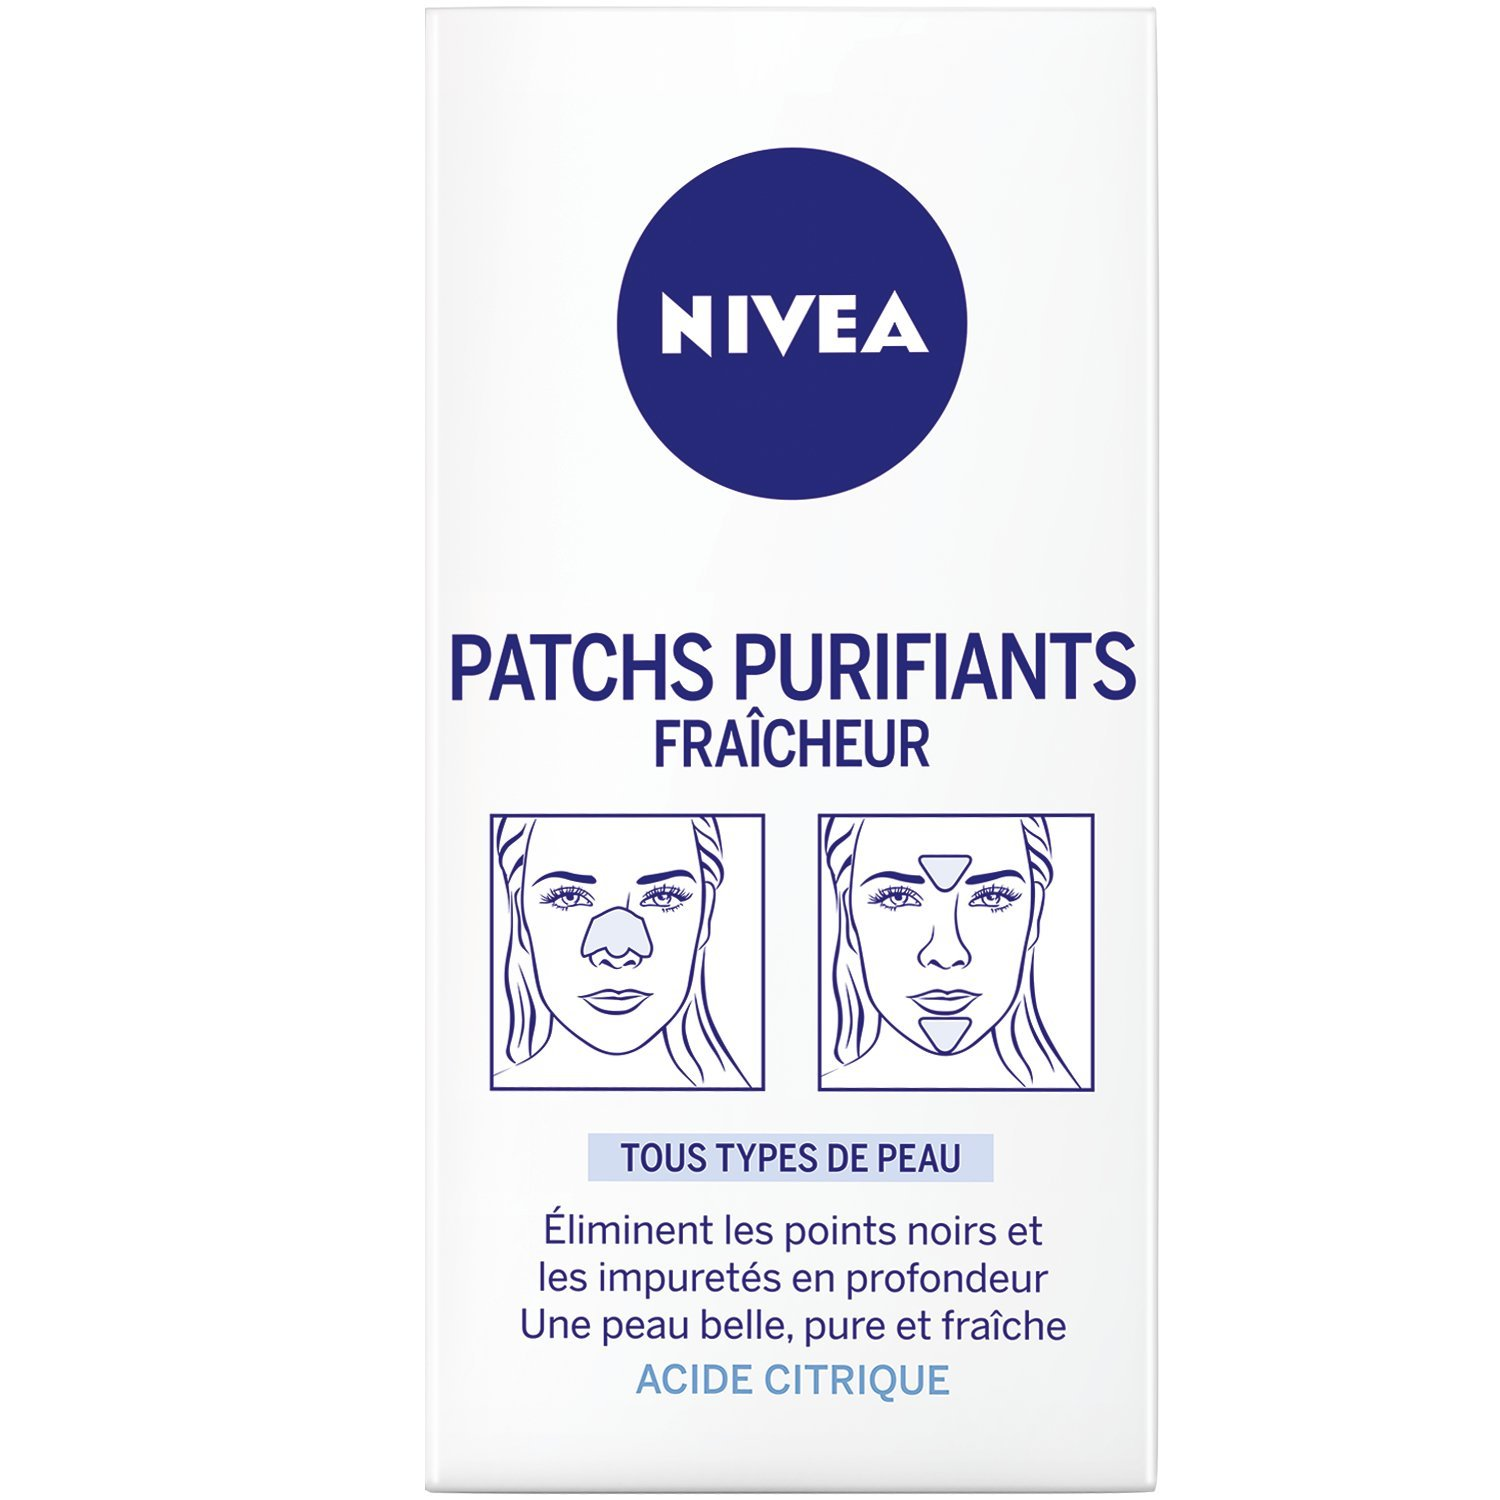 Le patch points noirs